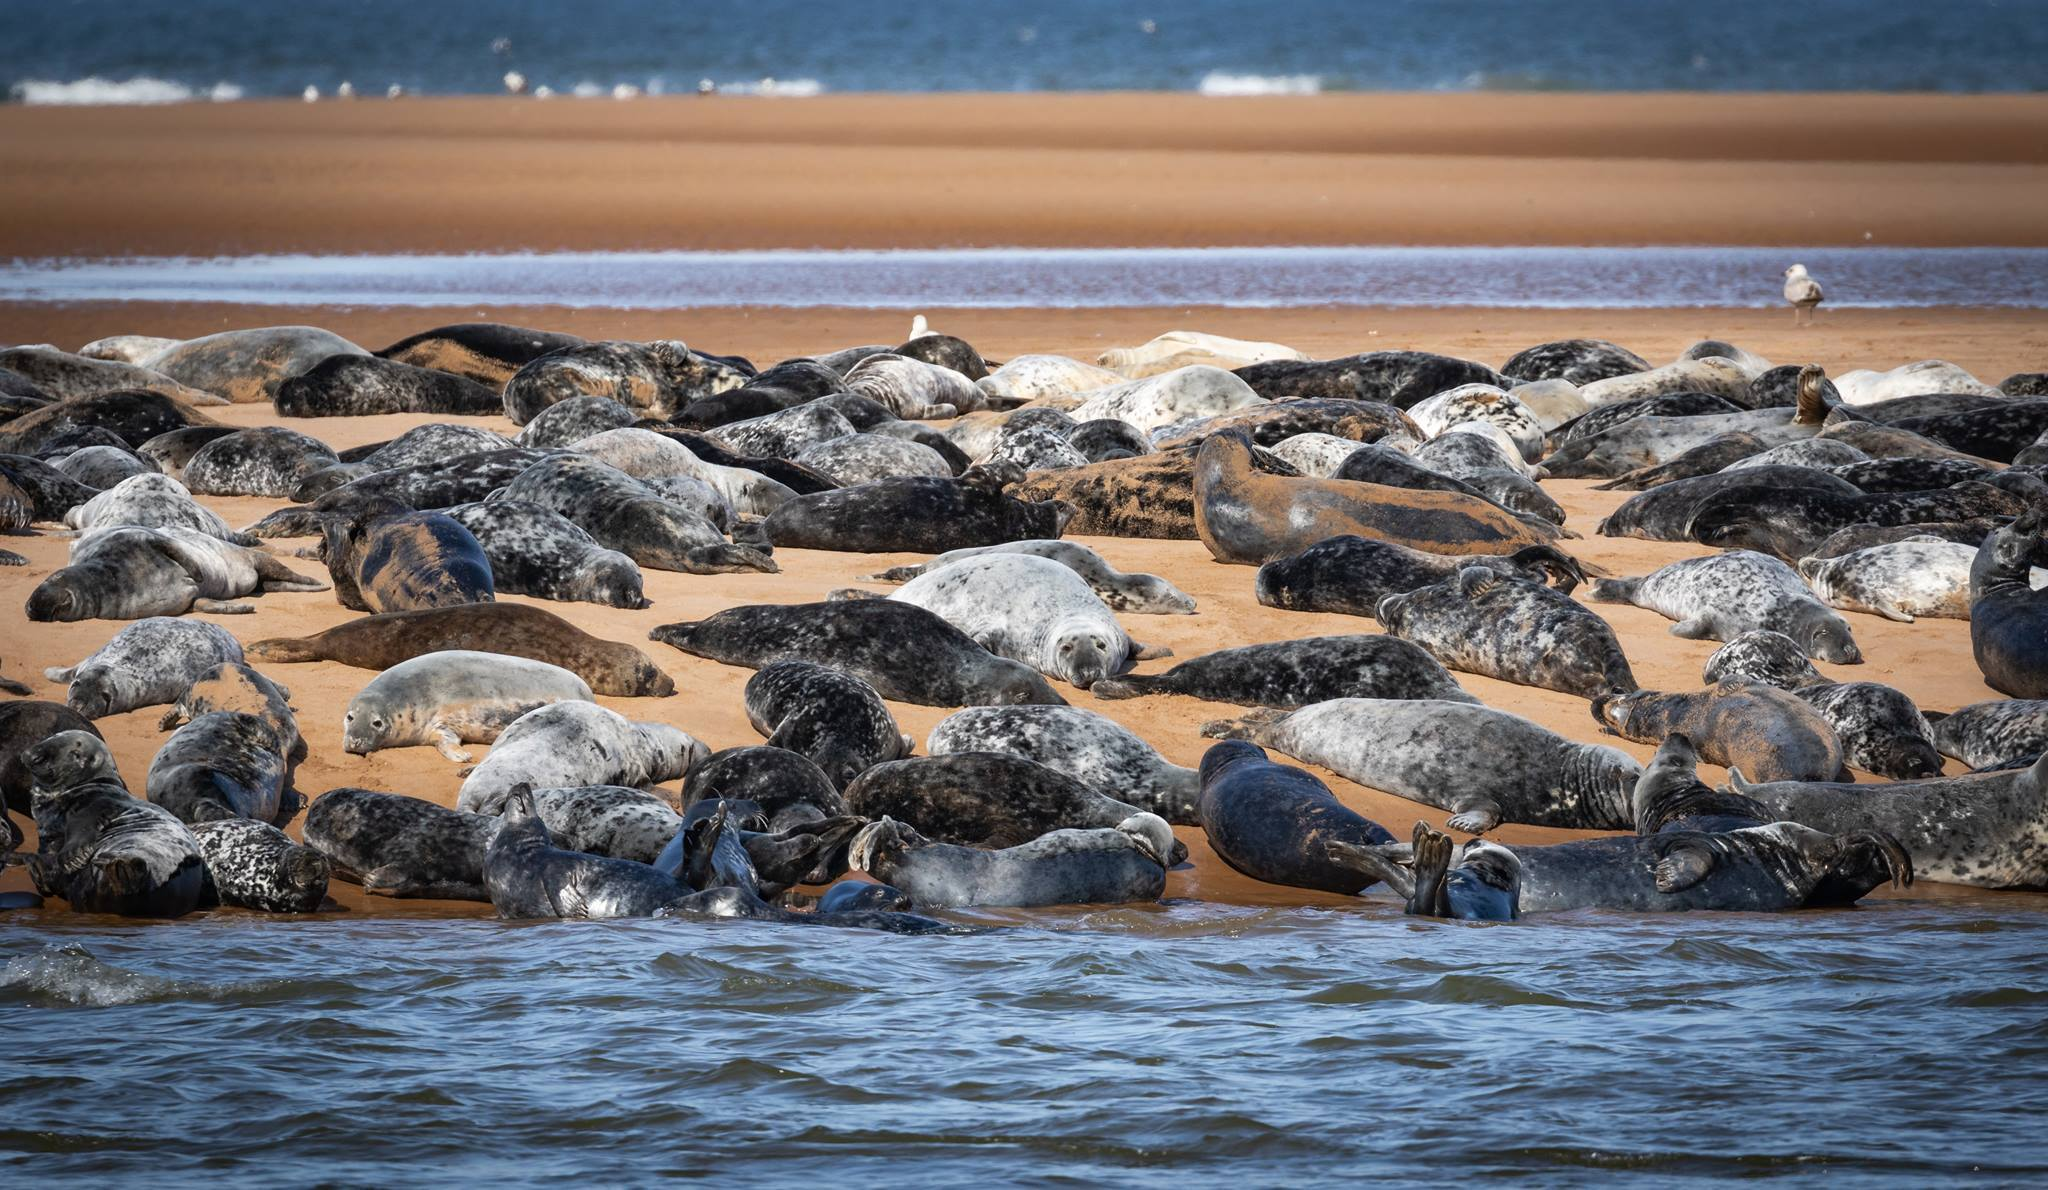 Seals in the Ythan estuary.